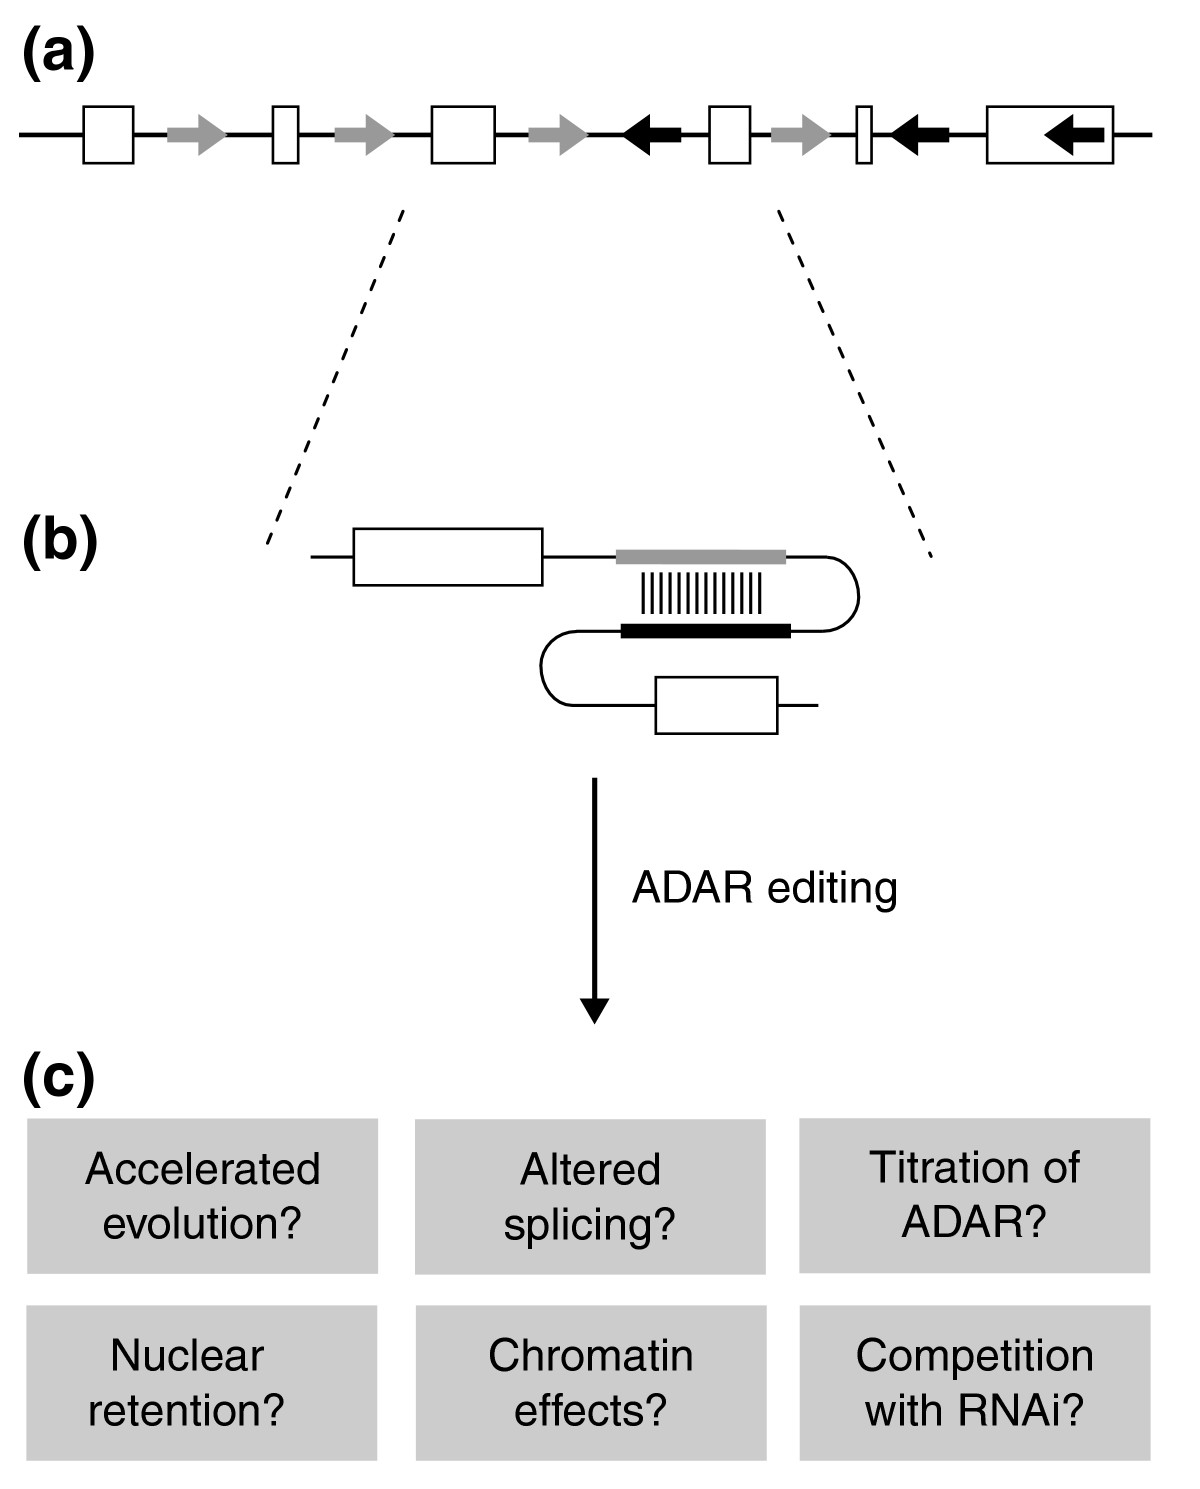 https://static-content.springer.com/image/art%3A10.1186%2Fgb-2005-6-4-216/MediaObjects/13059_2005_Article_960_Fig2_HTML.jpg